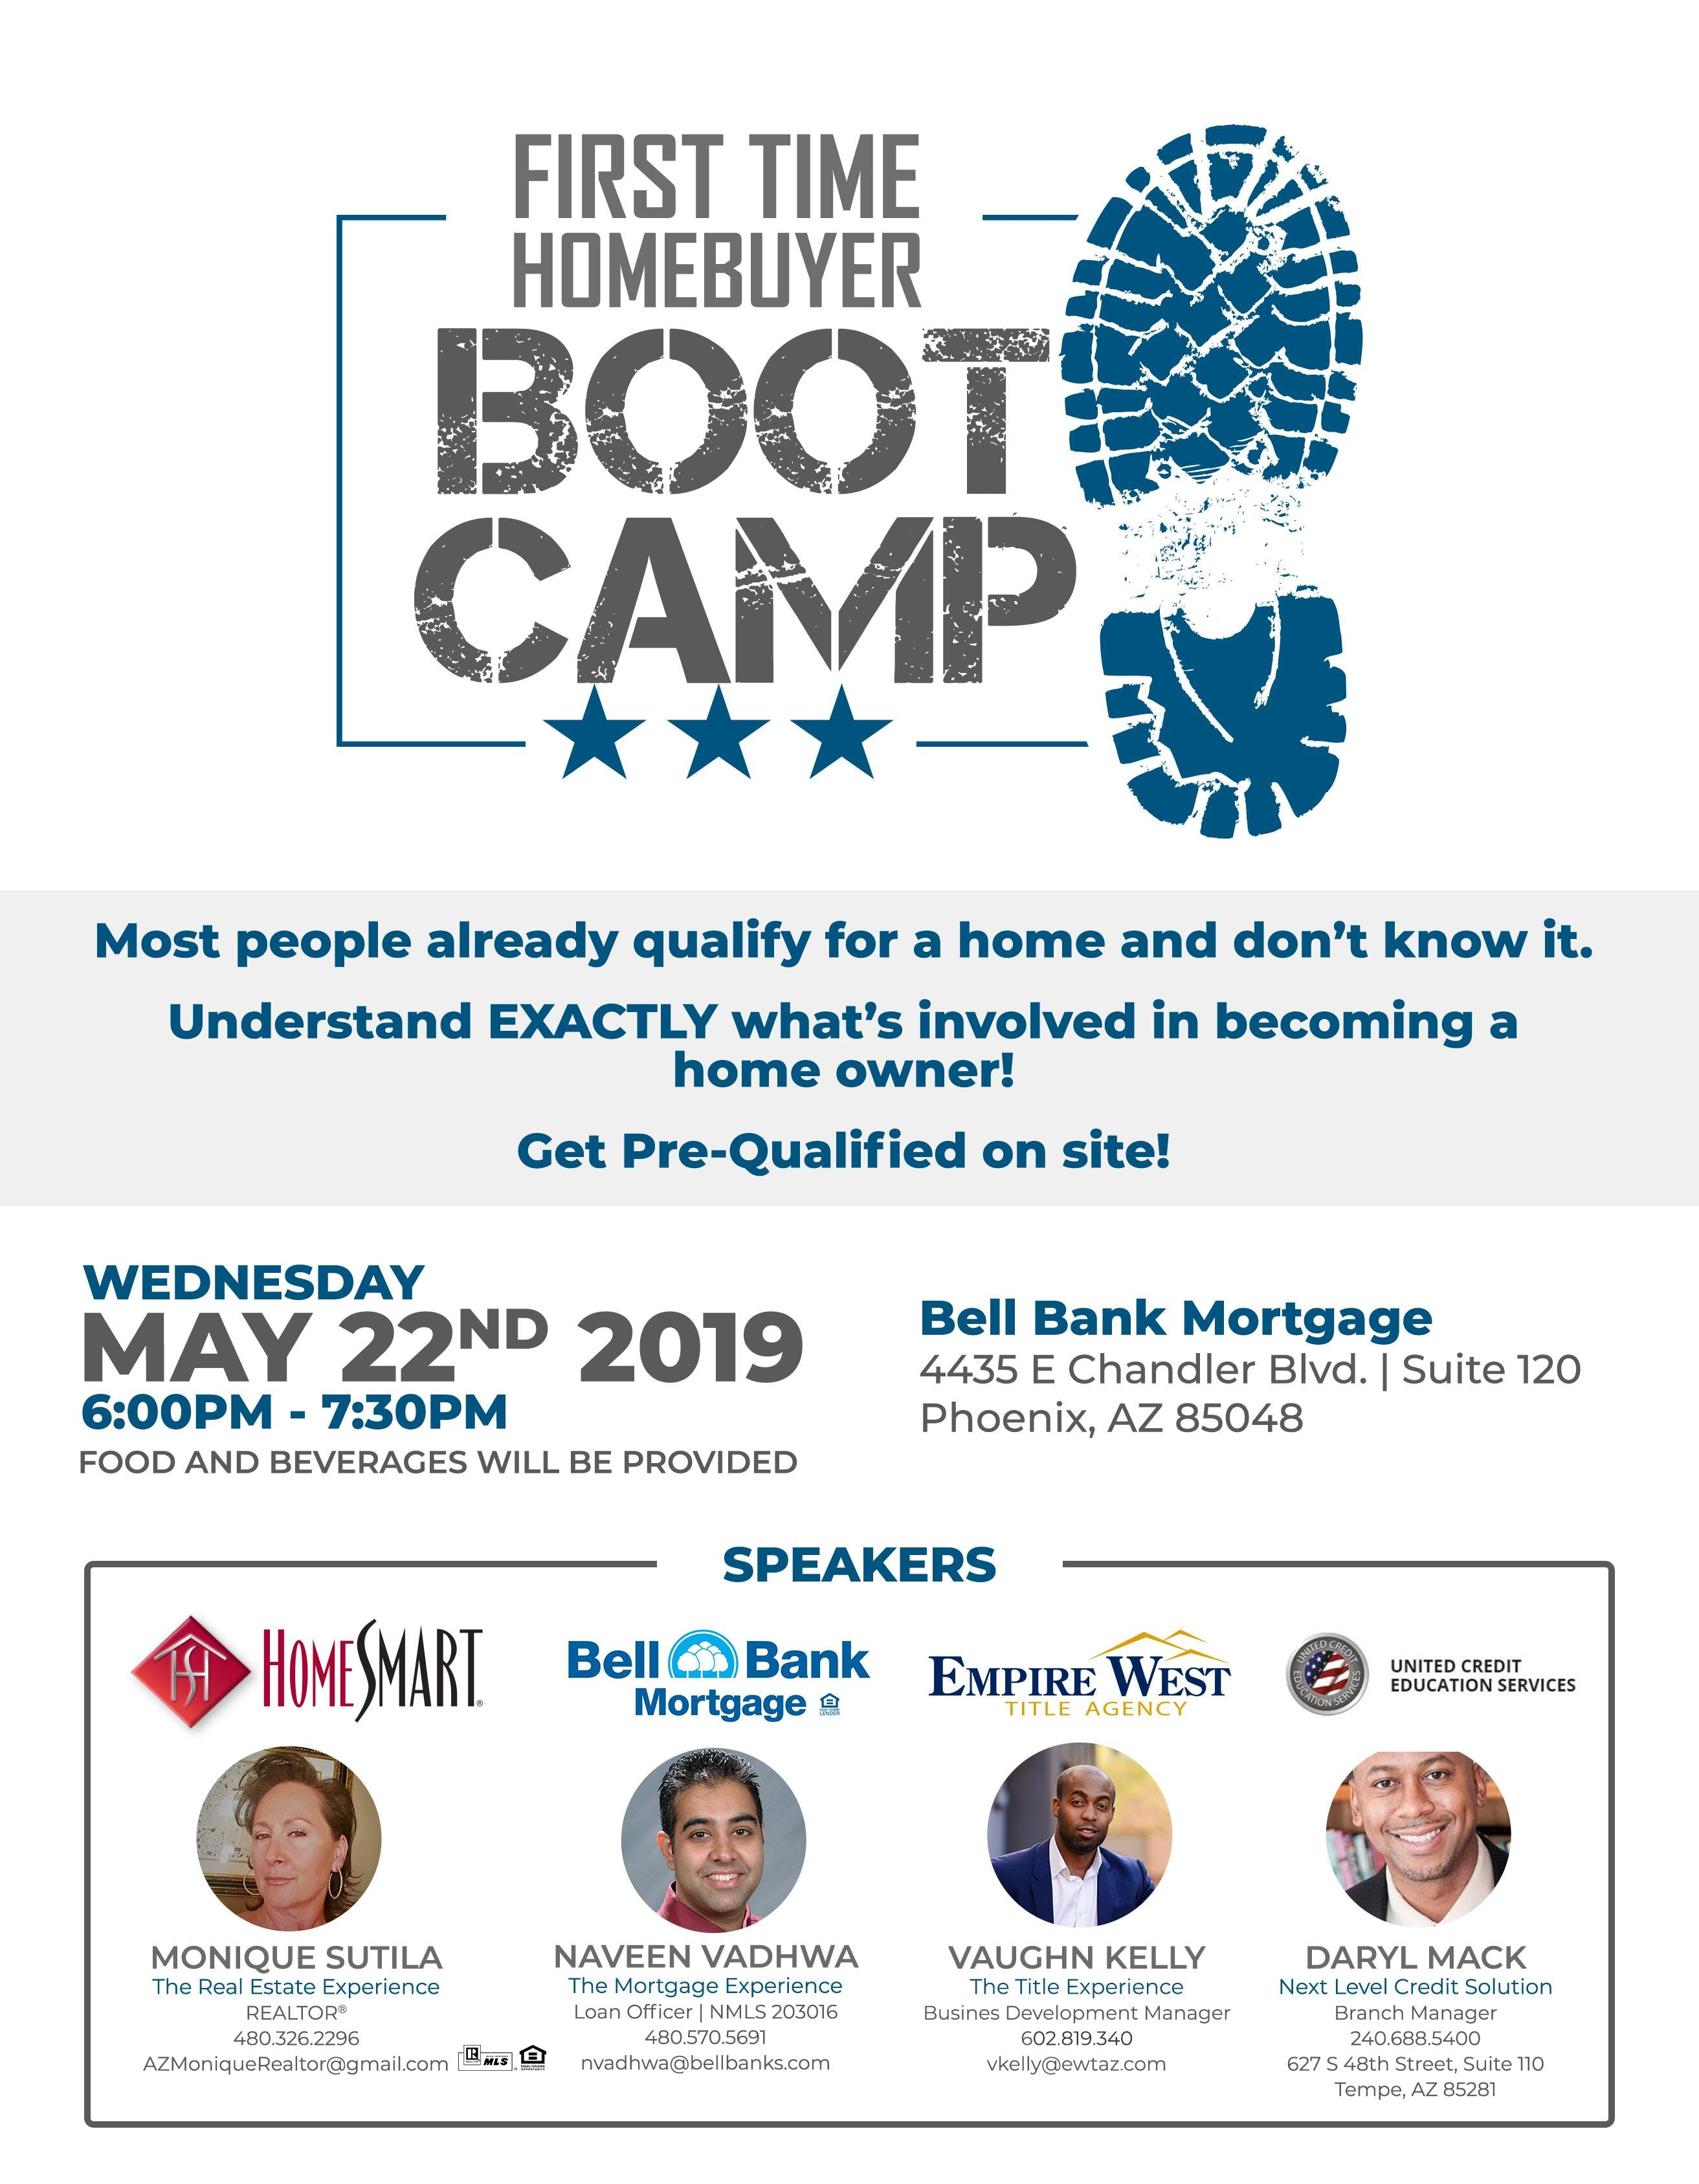 First Time Home-buyer Boot Camp